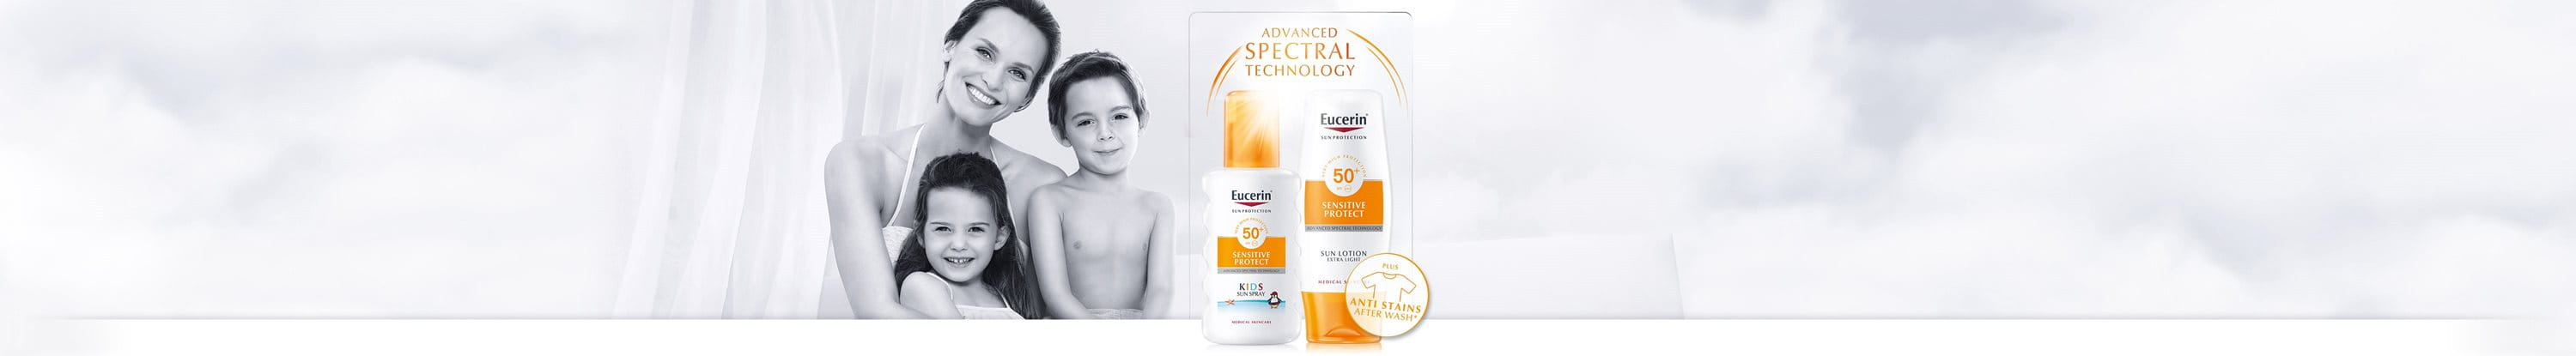 Women with the Eucerin sun protection symbol on shoulder